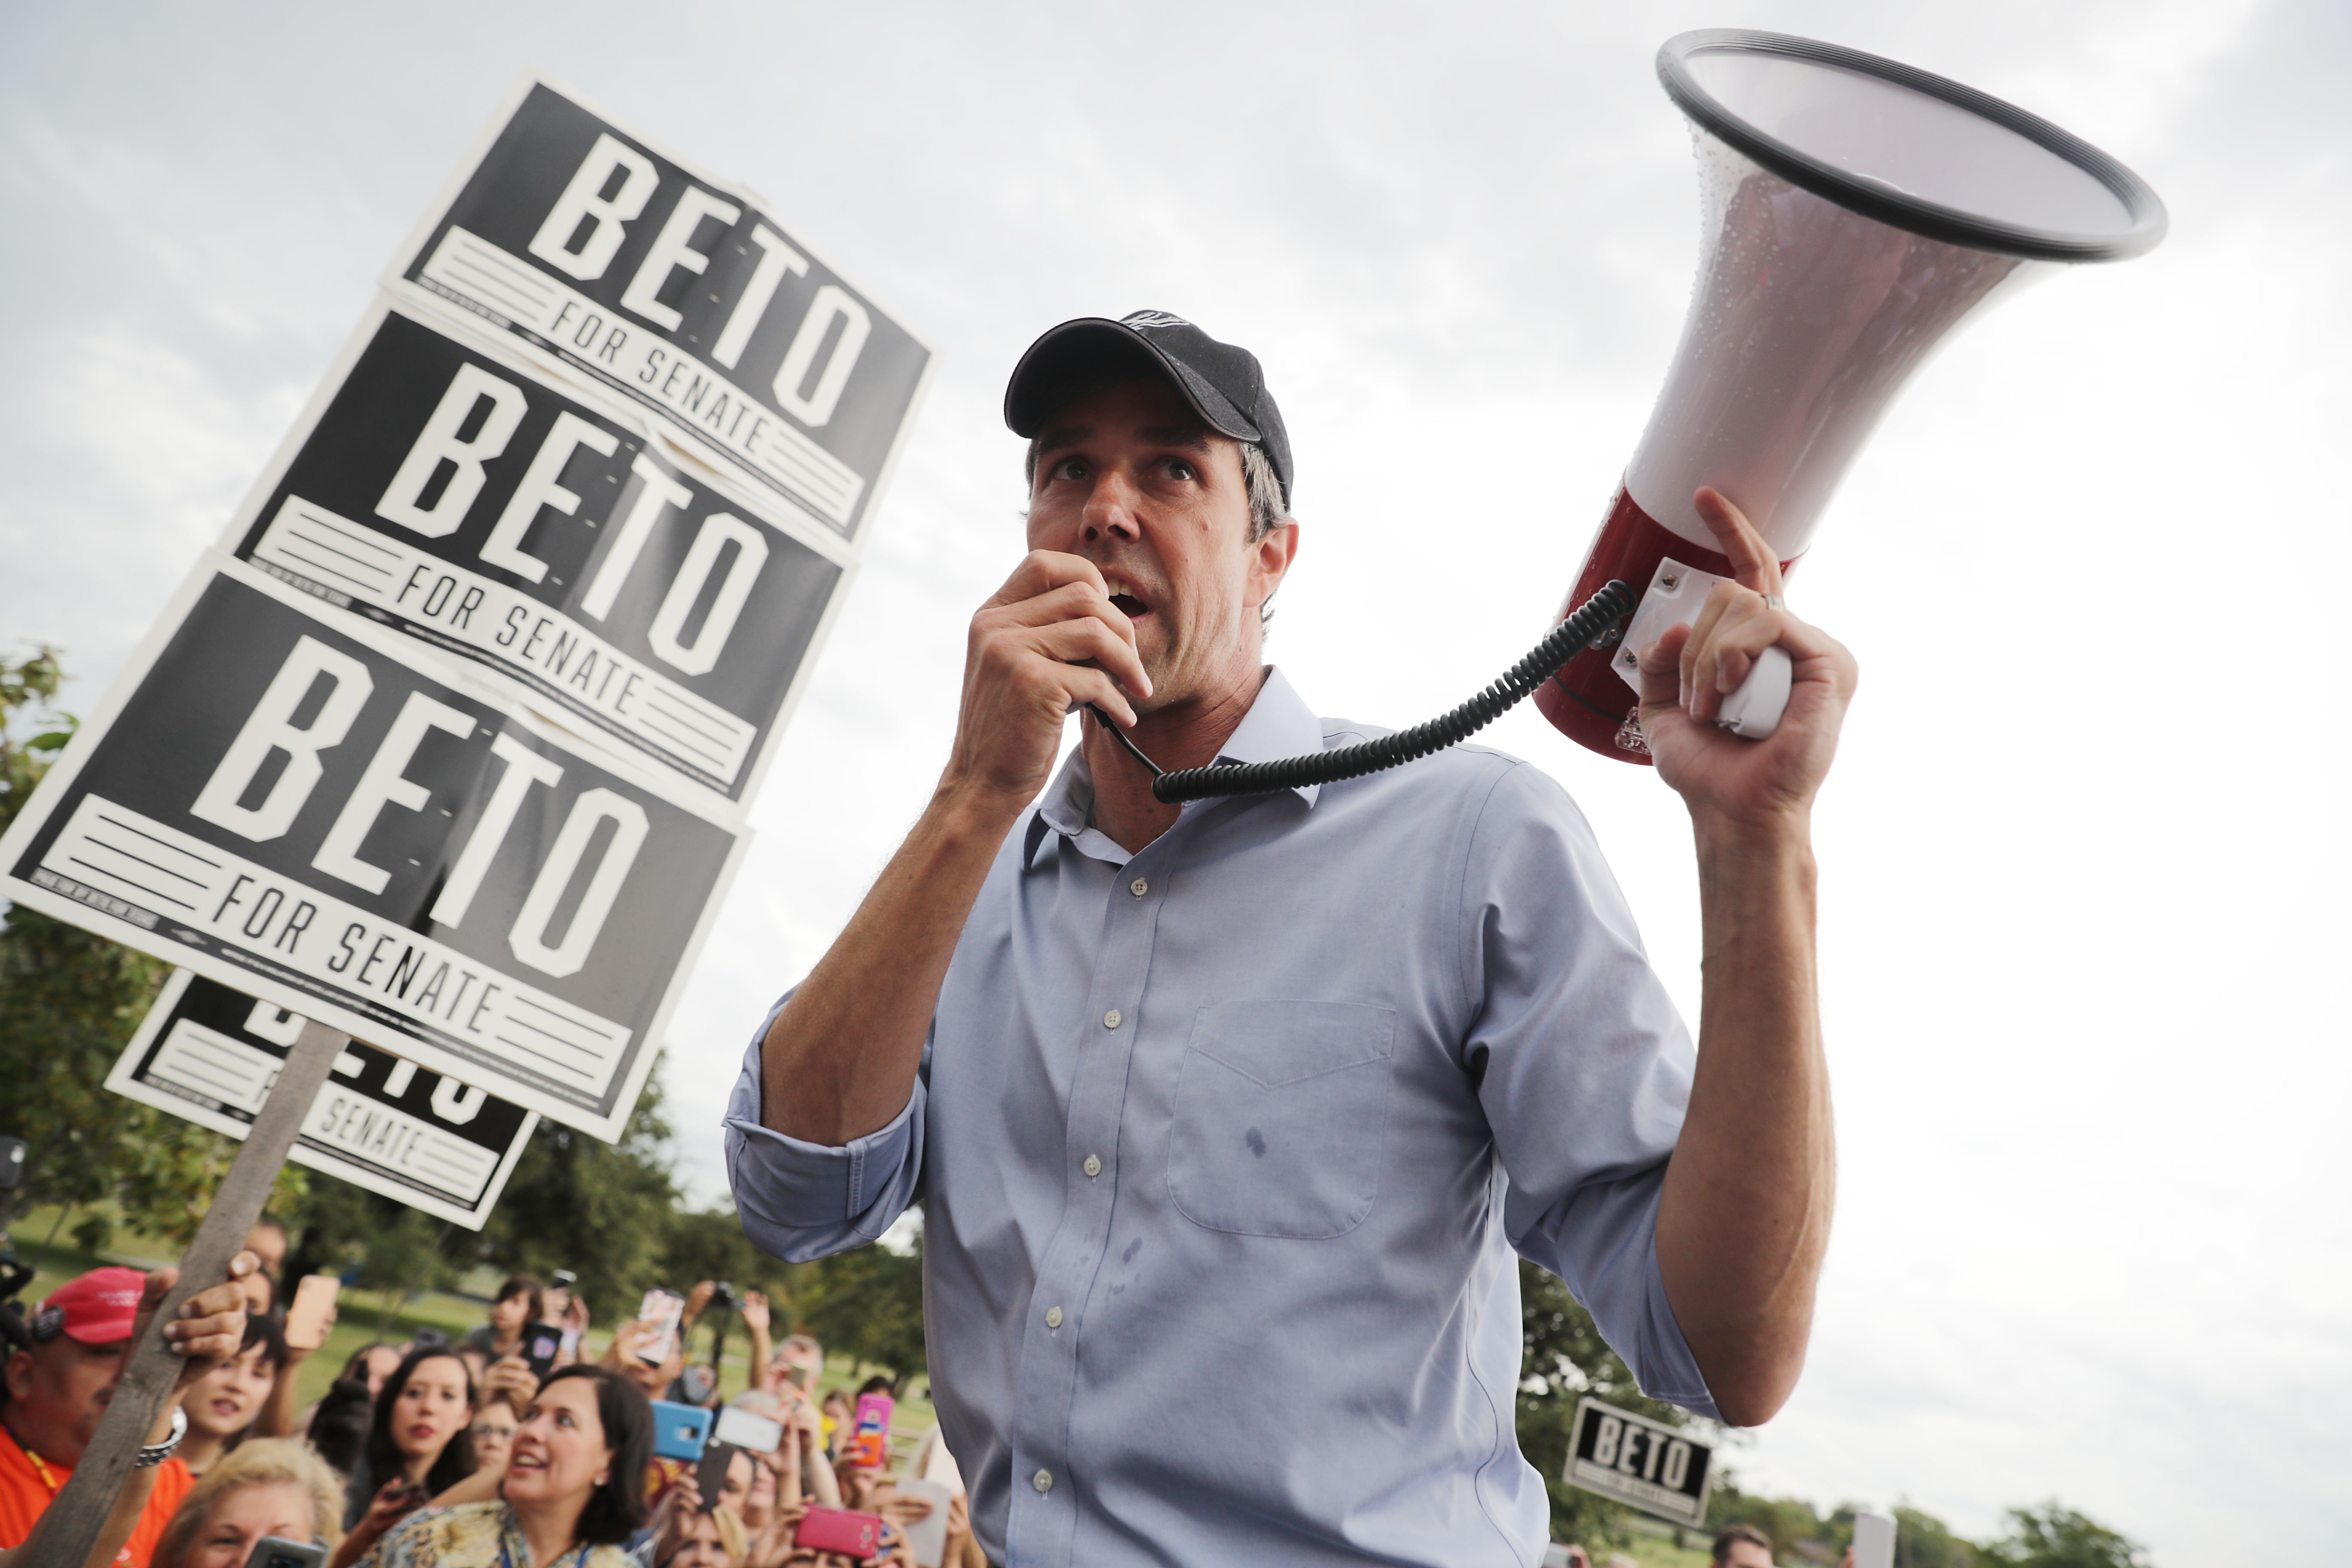 Former U.S. Rep. Beto O'Rourke on the campaign trail in 2018.